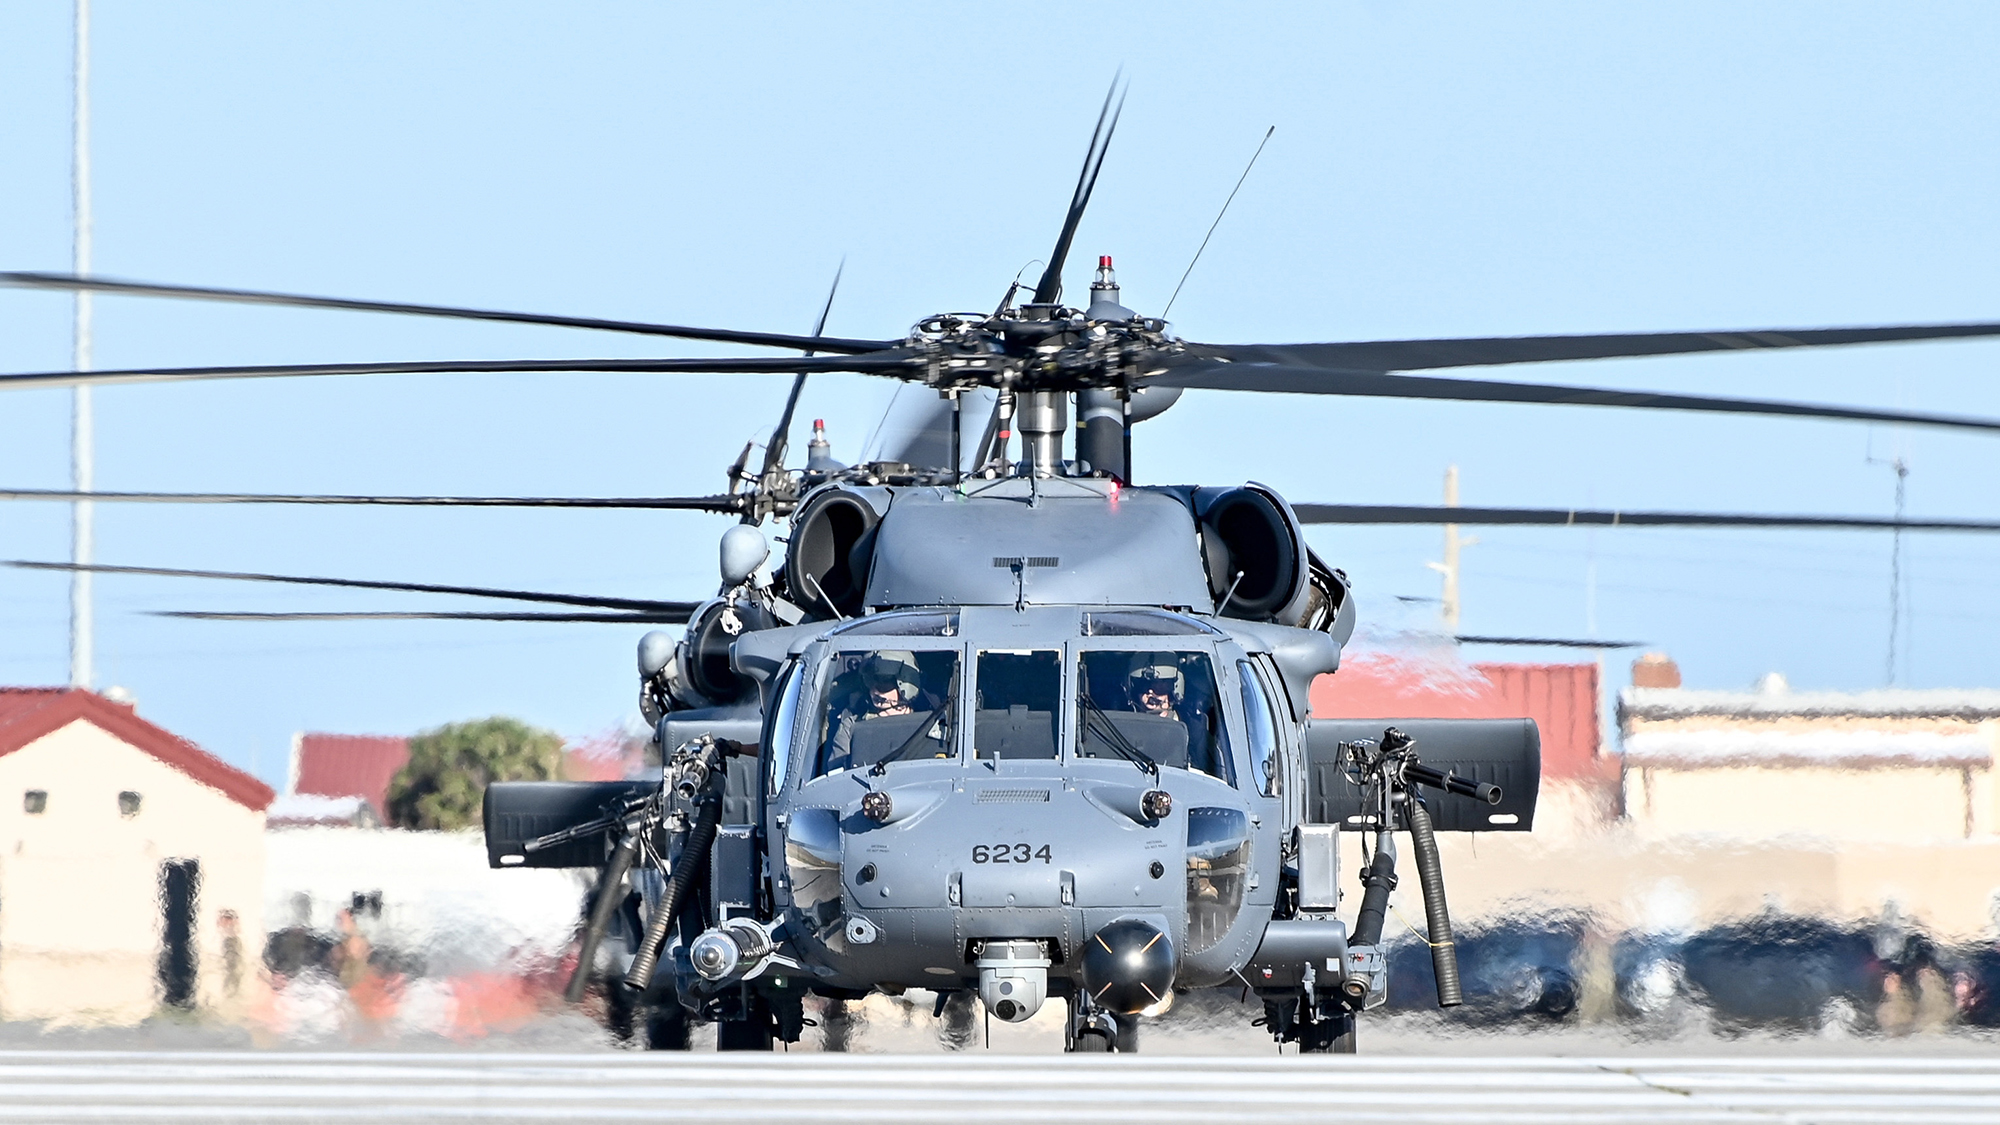 HH-60G Pave Hawk helicopters from the 920th Rescue Wing perform an elephant walk April 10, 2021, during an exercise at Patrick Space Force Base, Fla. An elephant walk is a term used to describe aircraft taxiing and taking off in close formation. (Master Sgt. Kelly Goonan/Air Force)